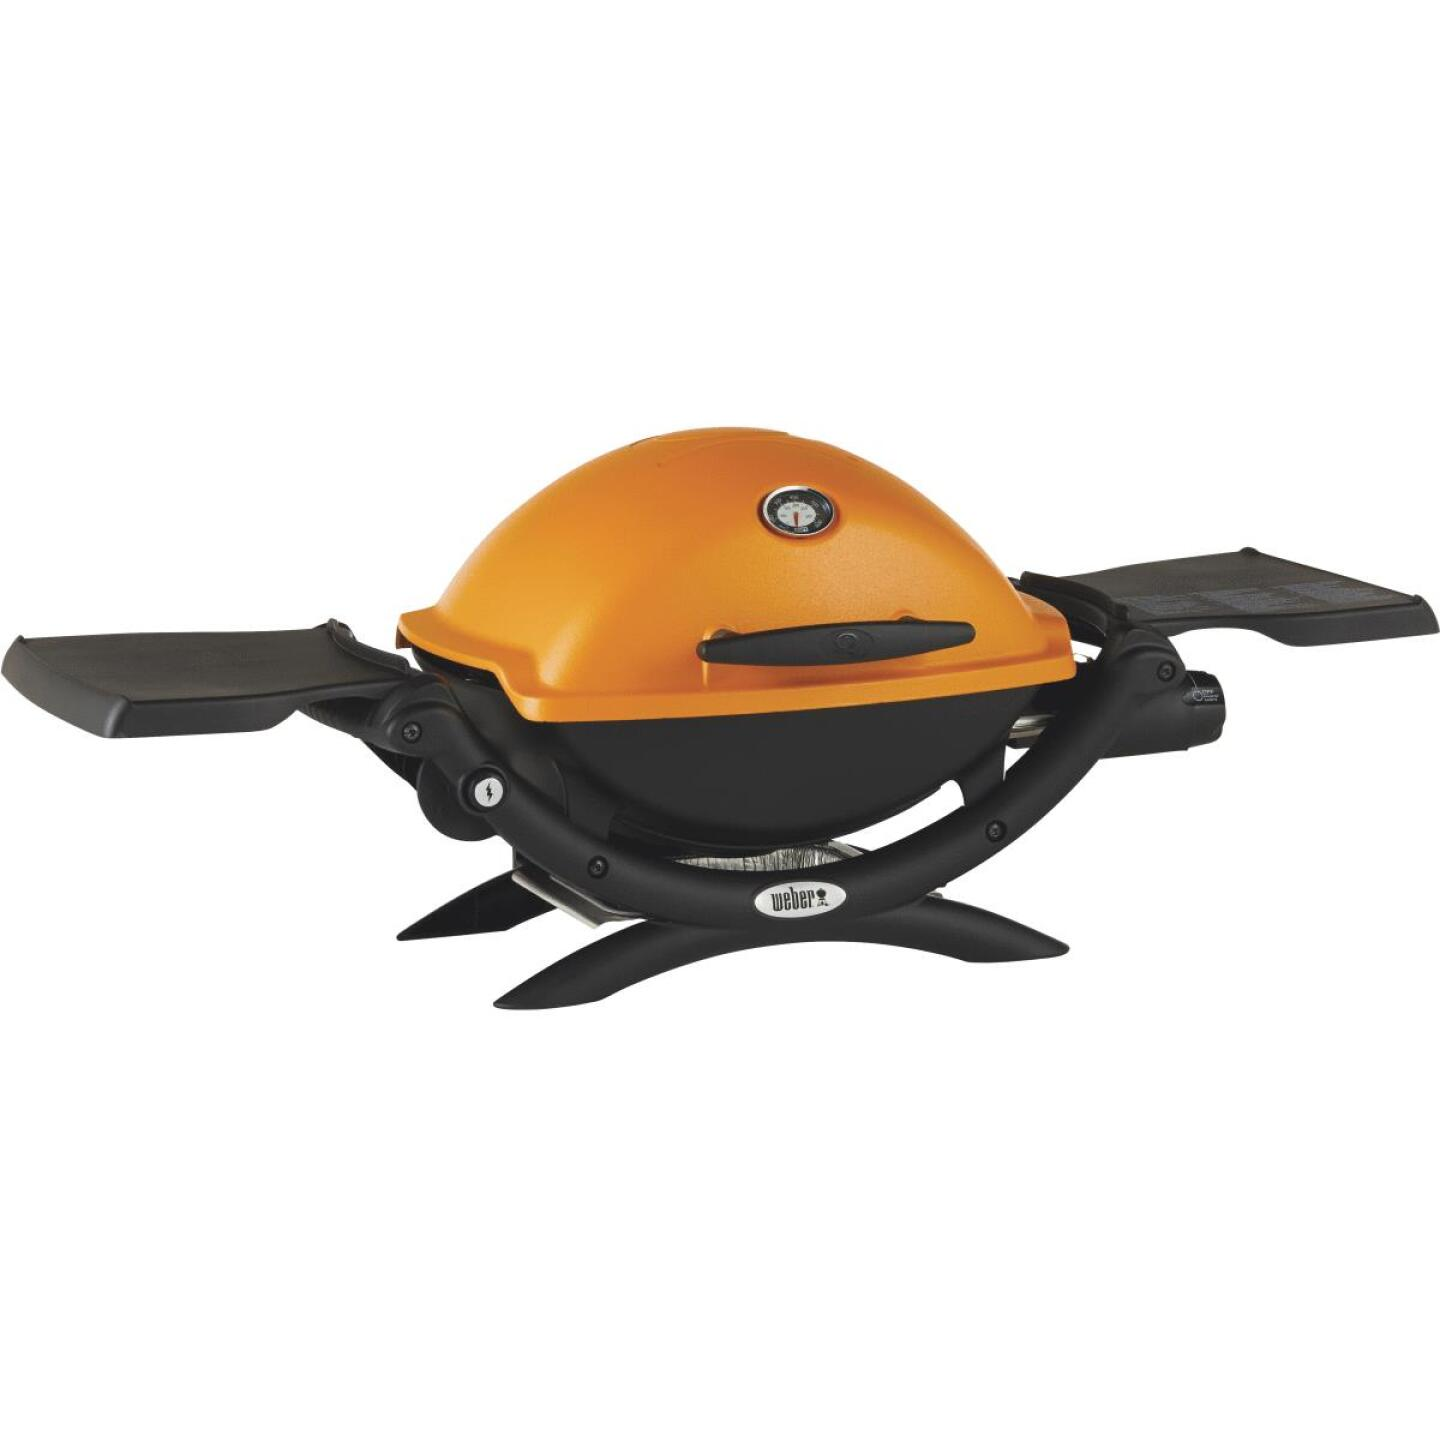 Weber Q 1200 1-Burner Orange 8,500-BTU LP Gas Grill Image 1